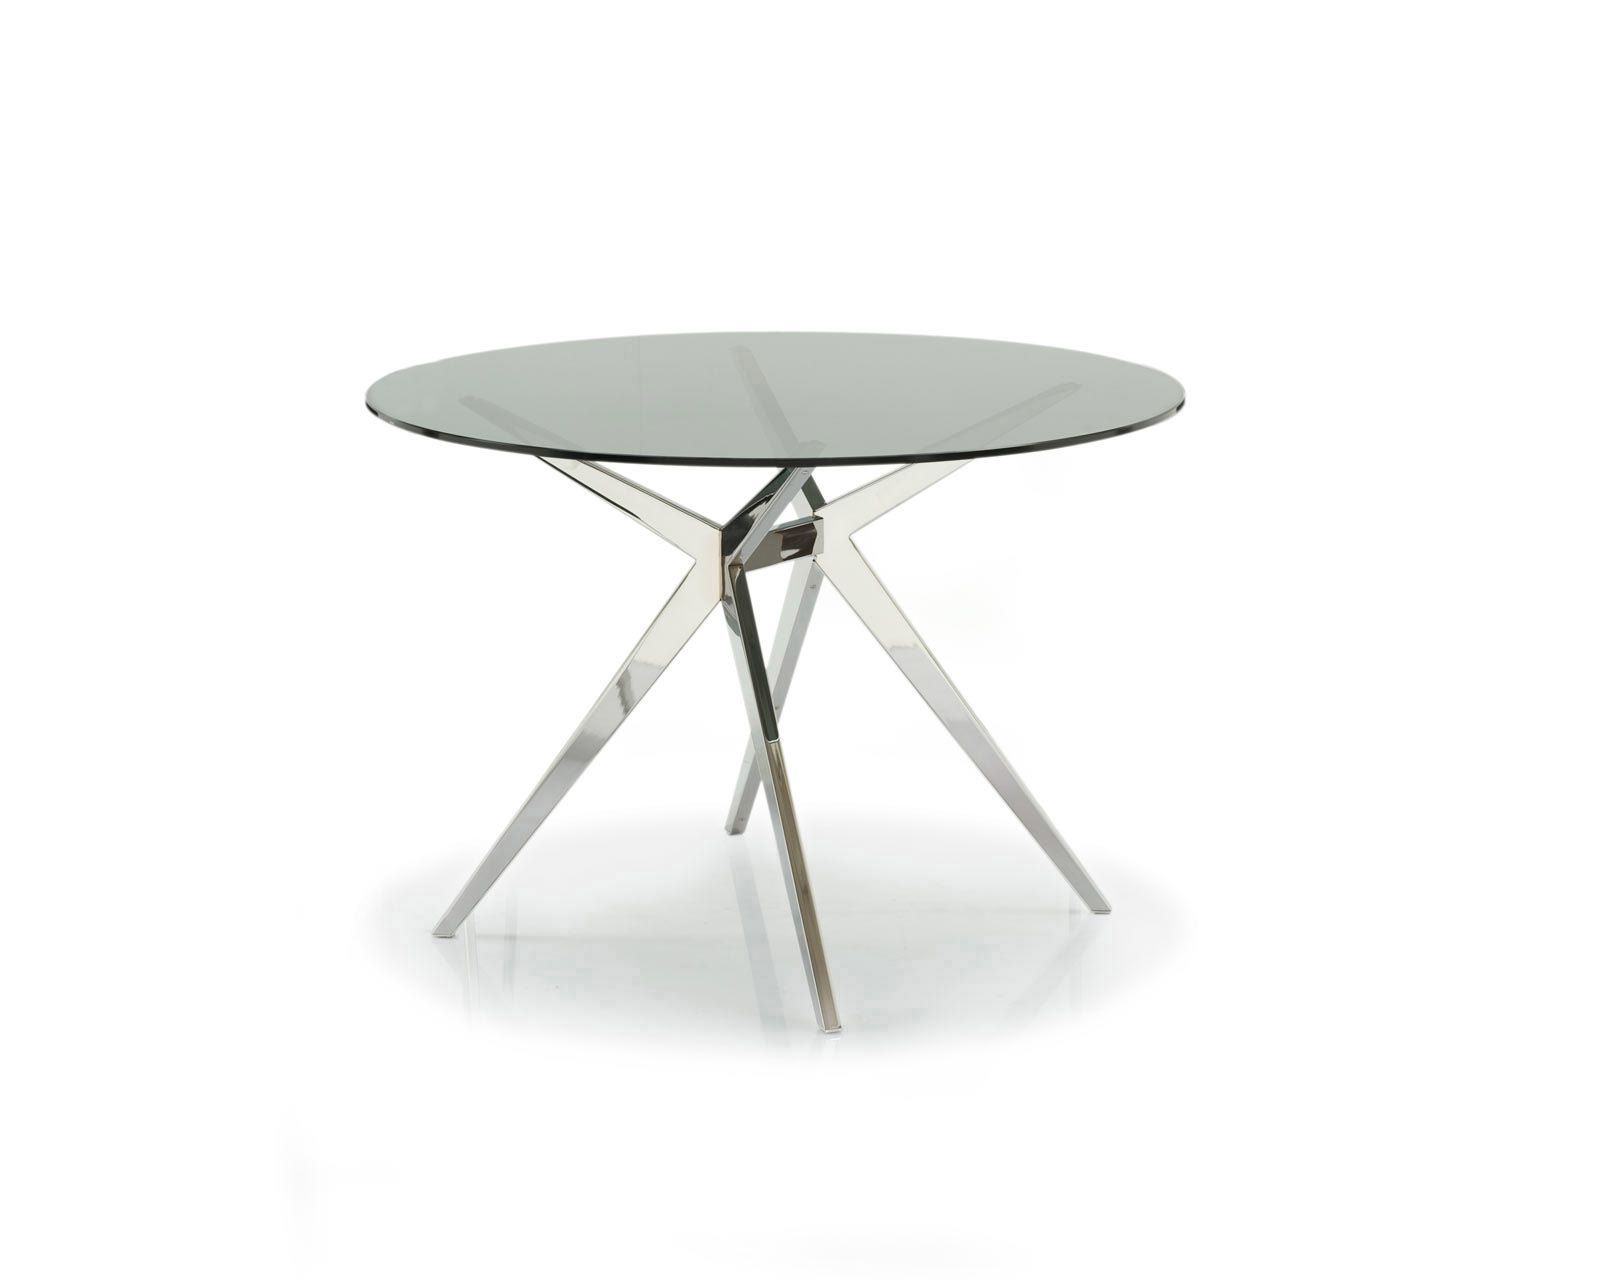 Round glass table tops - Seven Round Glass Table Top Calligaris Cs 4042 Rd 110 G